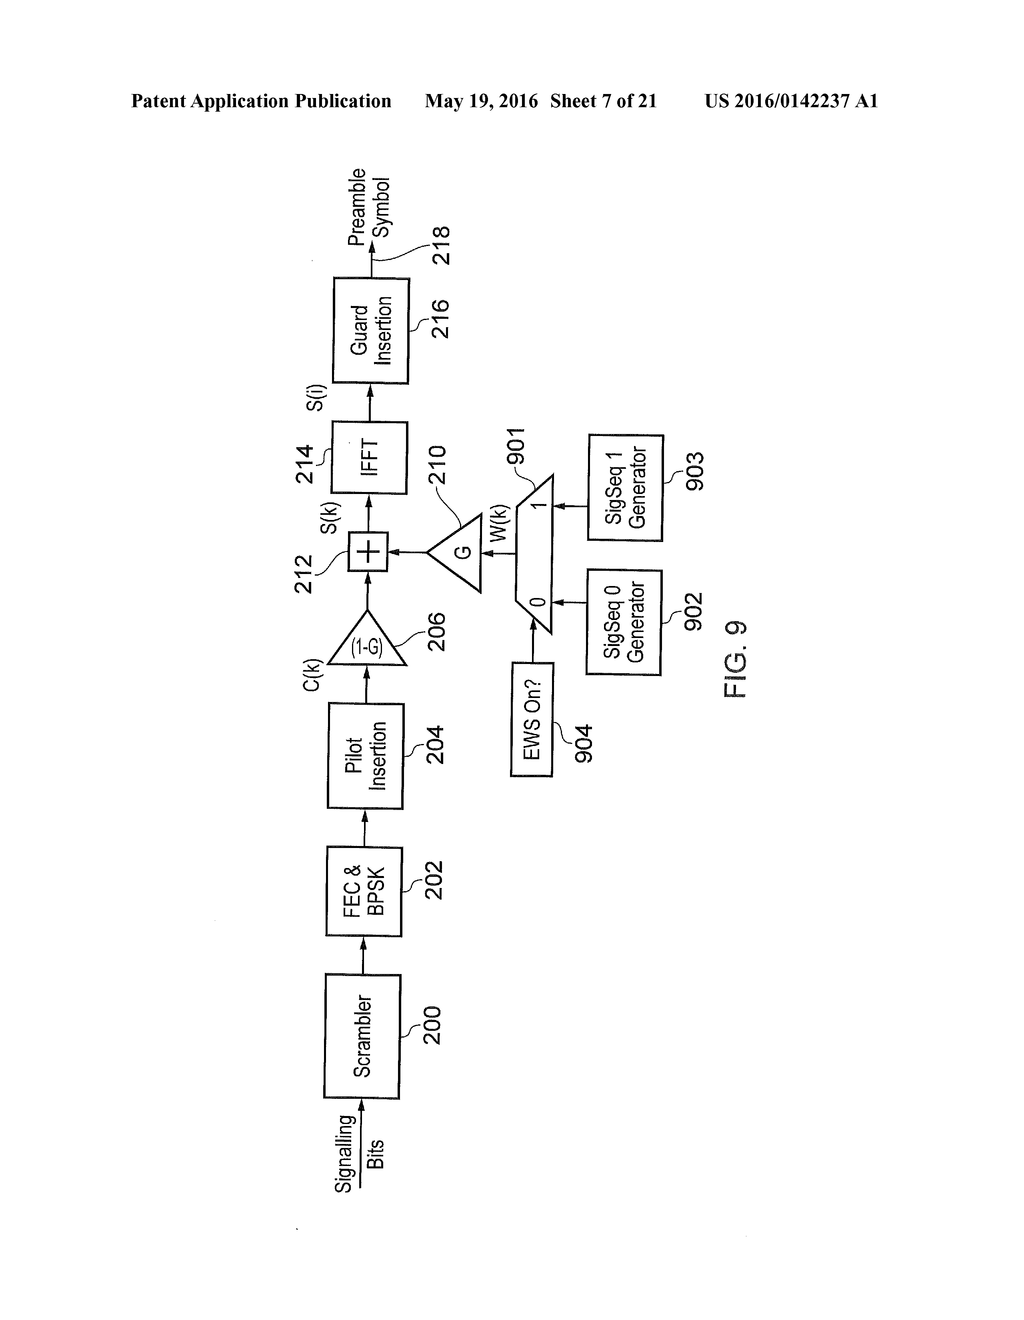 hight resolution of implicit signalling in ofdm preamble with embedded signature sequence and cyclic prefix and postfix aided signature detection diagram schematic